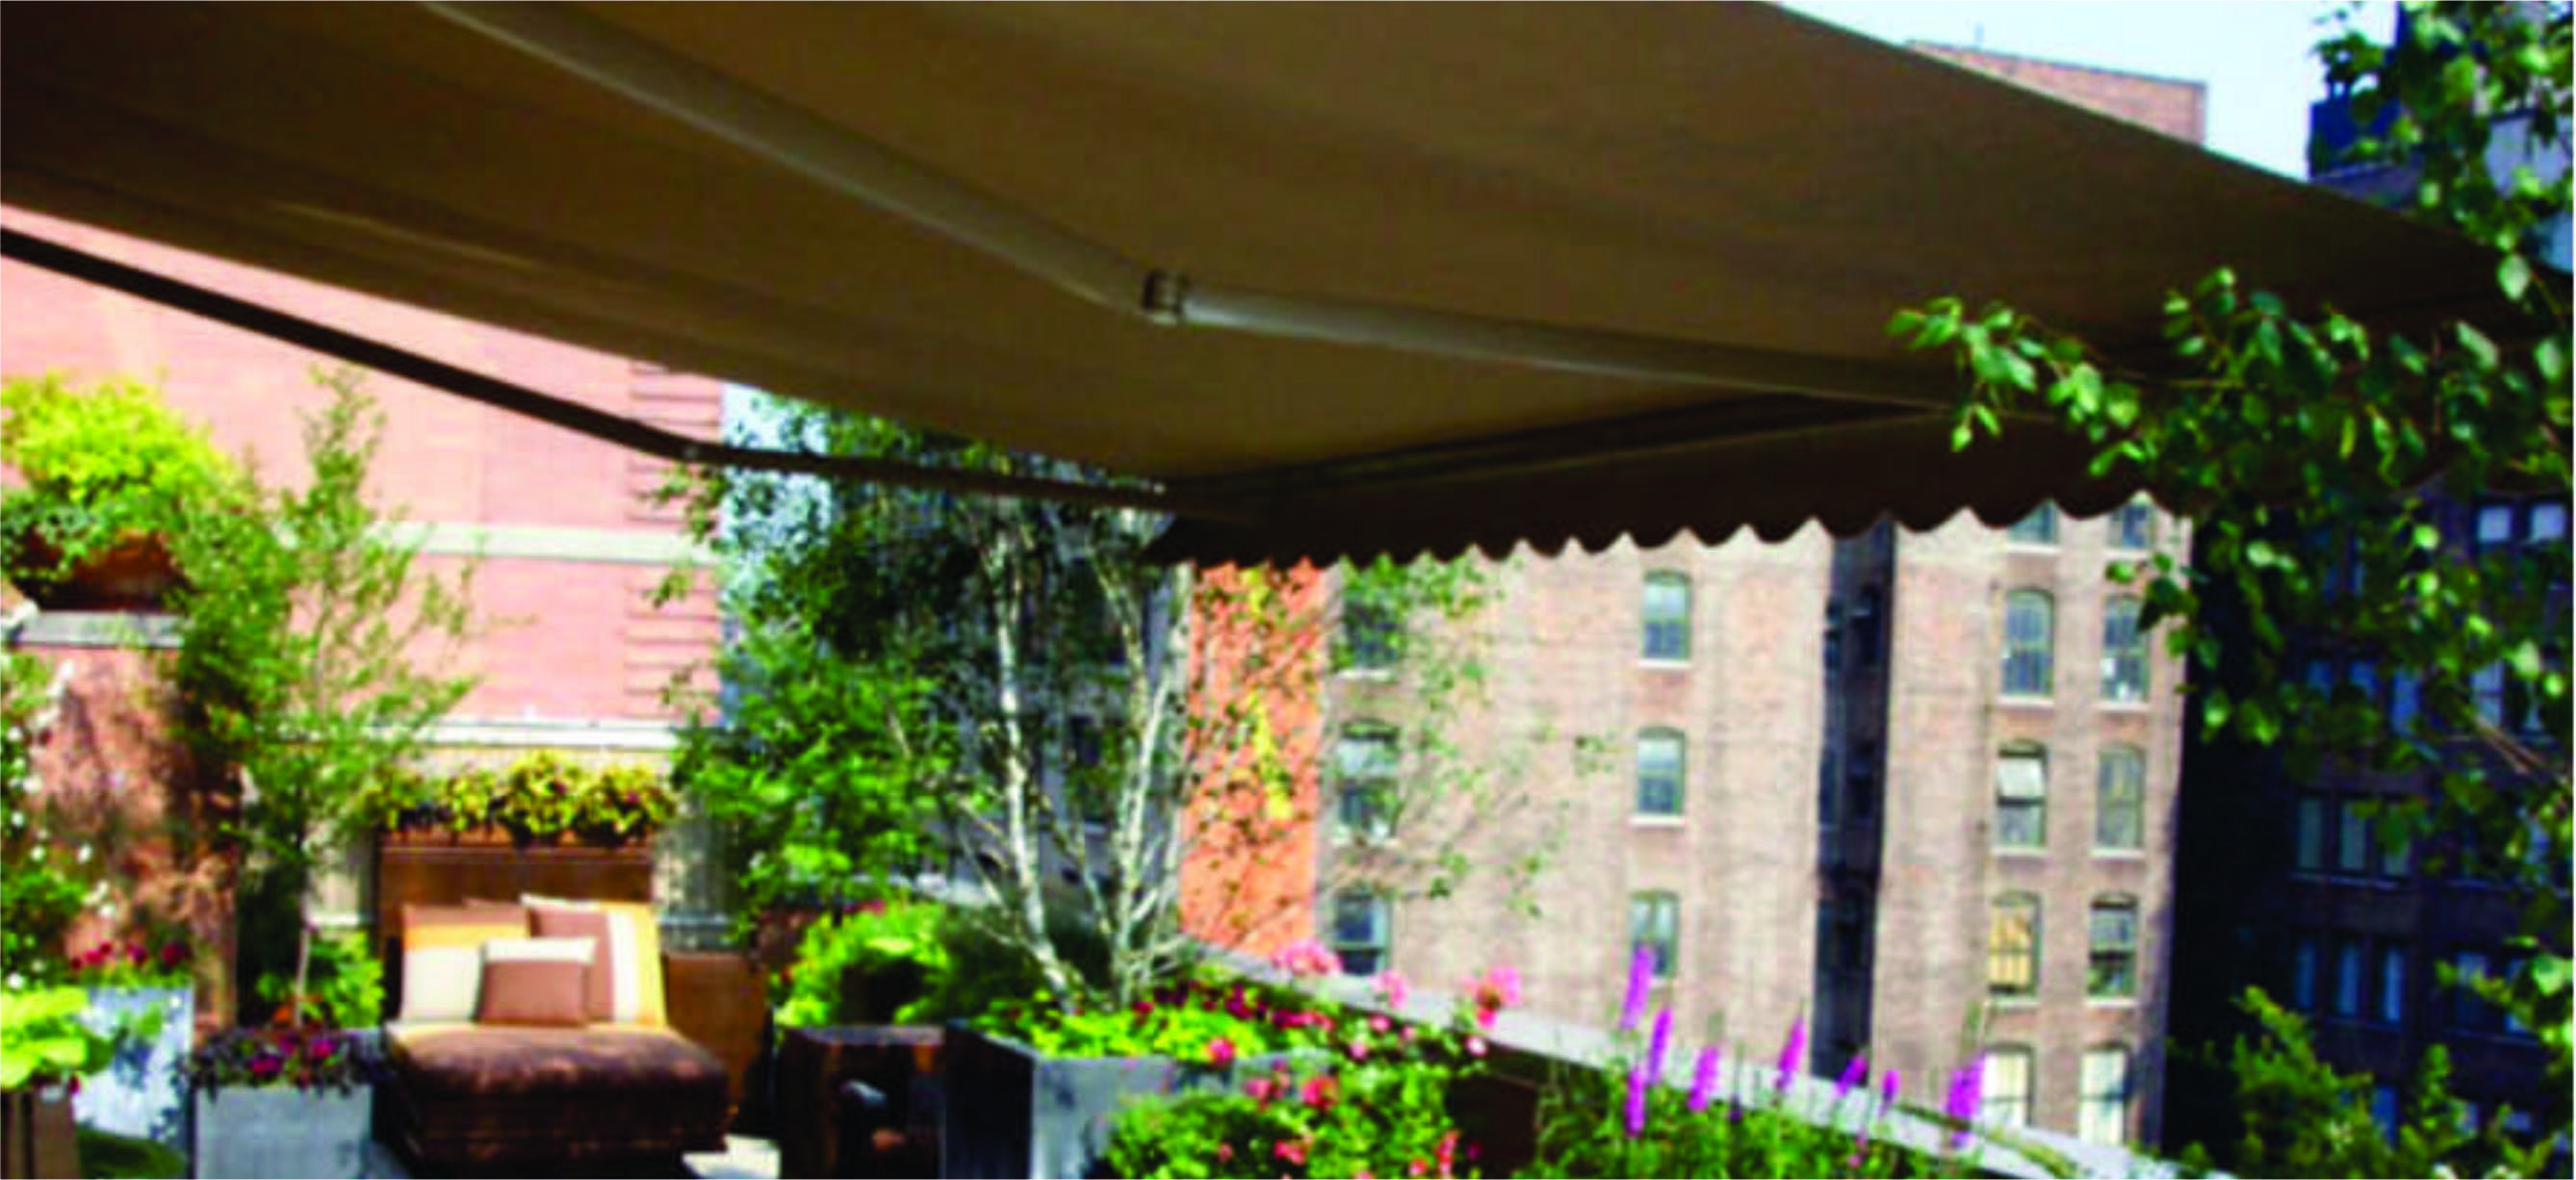 patio for awning cnxconsortium awnings of shade patios fresh retractable